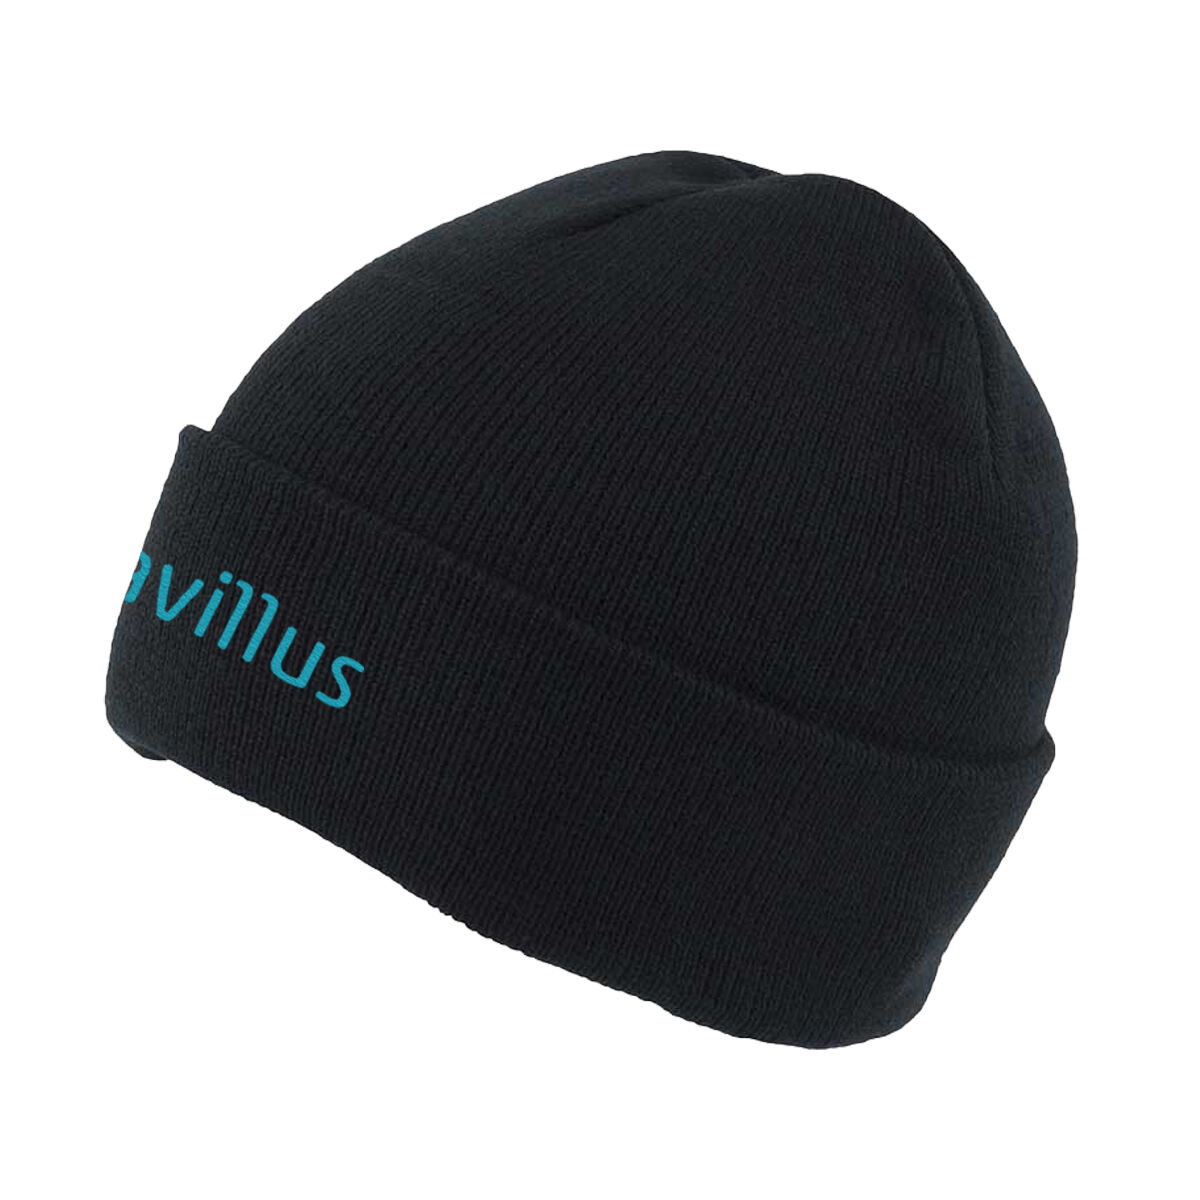 Recycled Knitted Beanie Hat